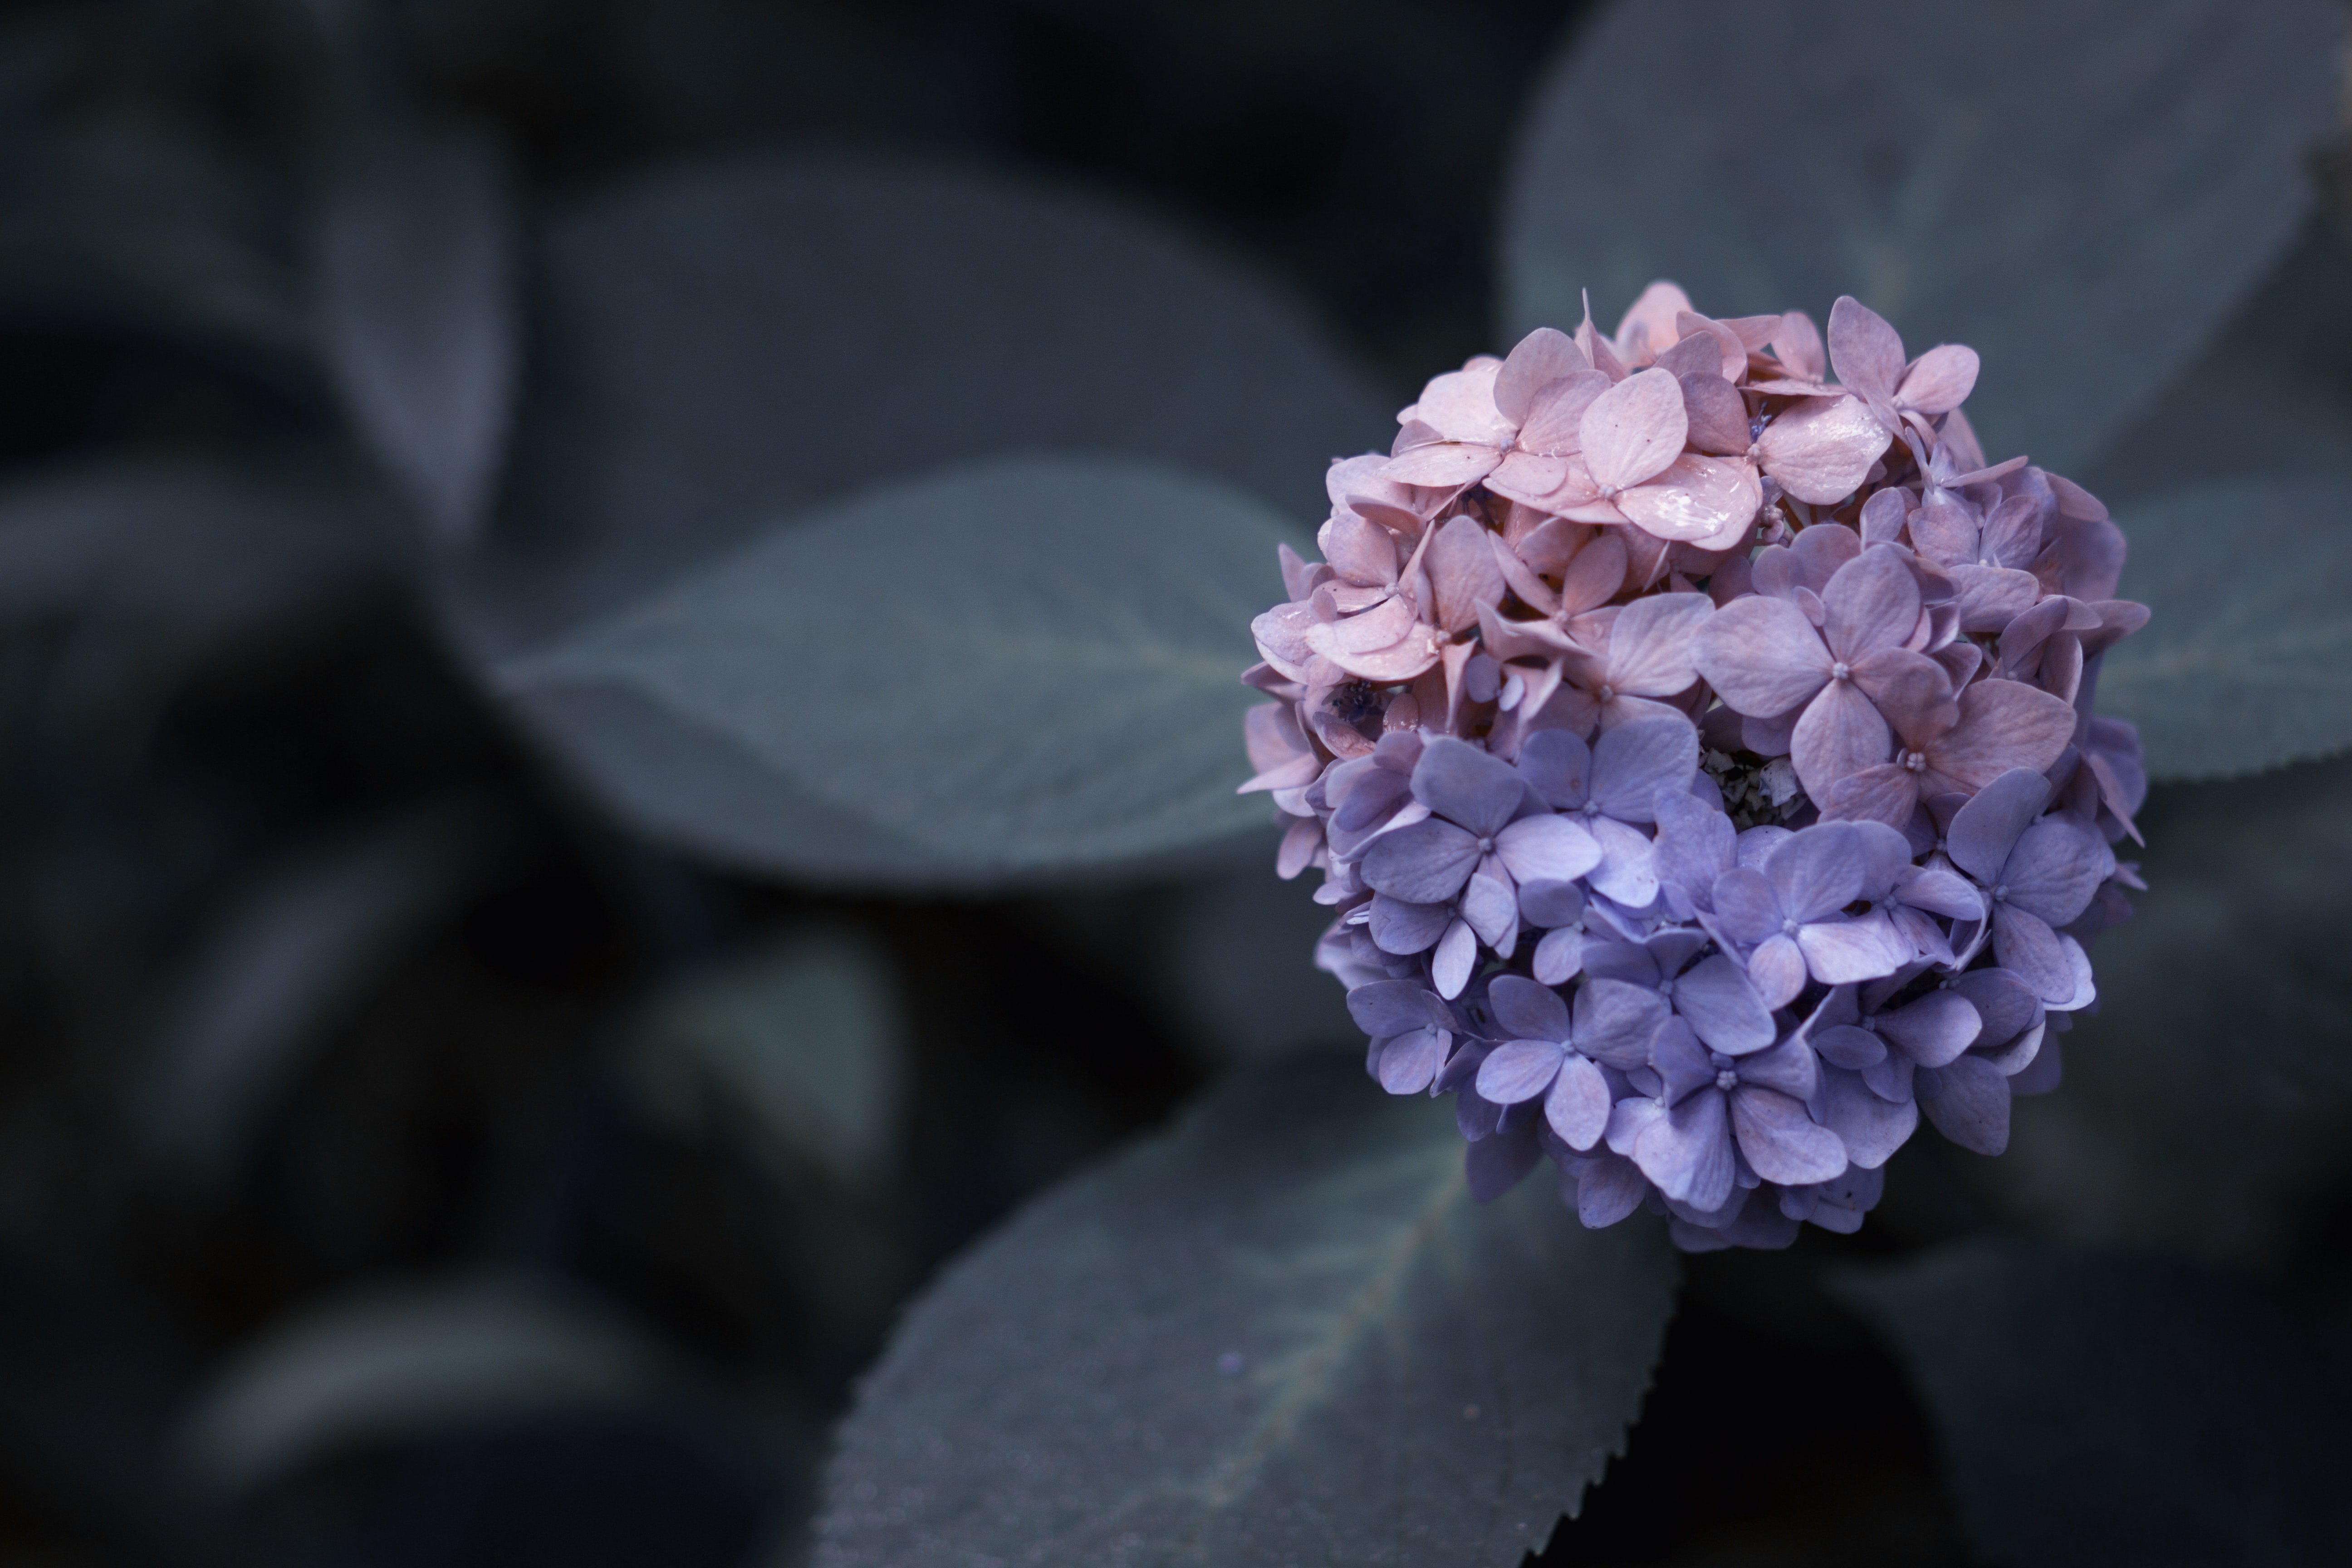 macro photography of a pink and purple flower